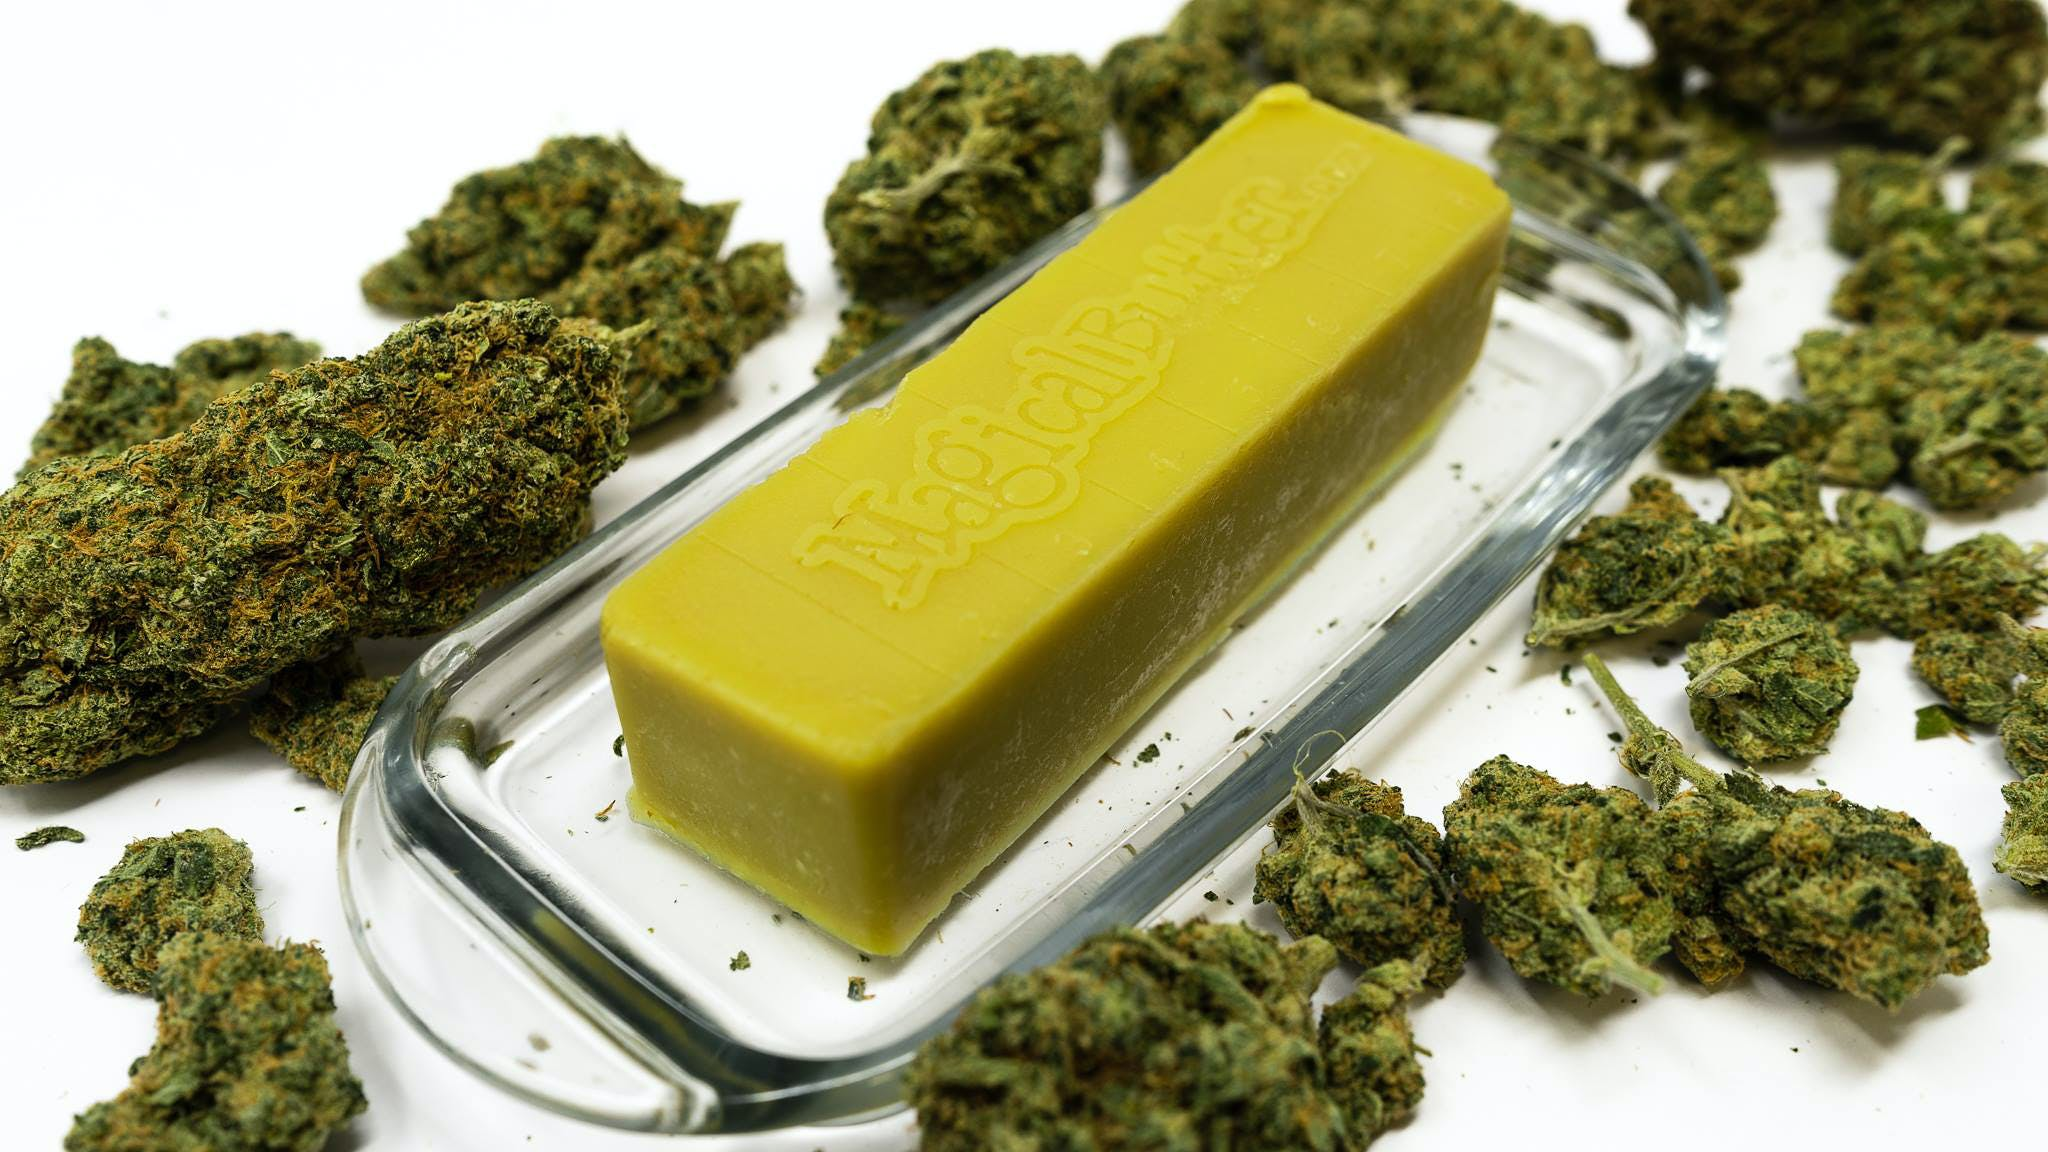 Magical Butter This decarboxylating box will make your edibles a whole lot more potent